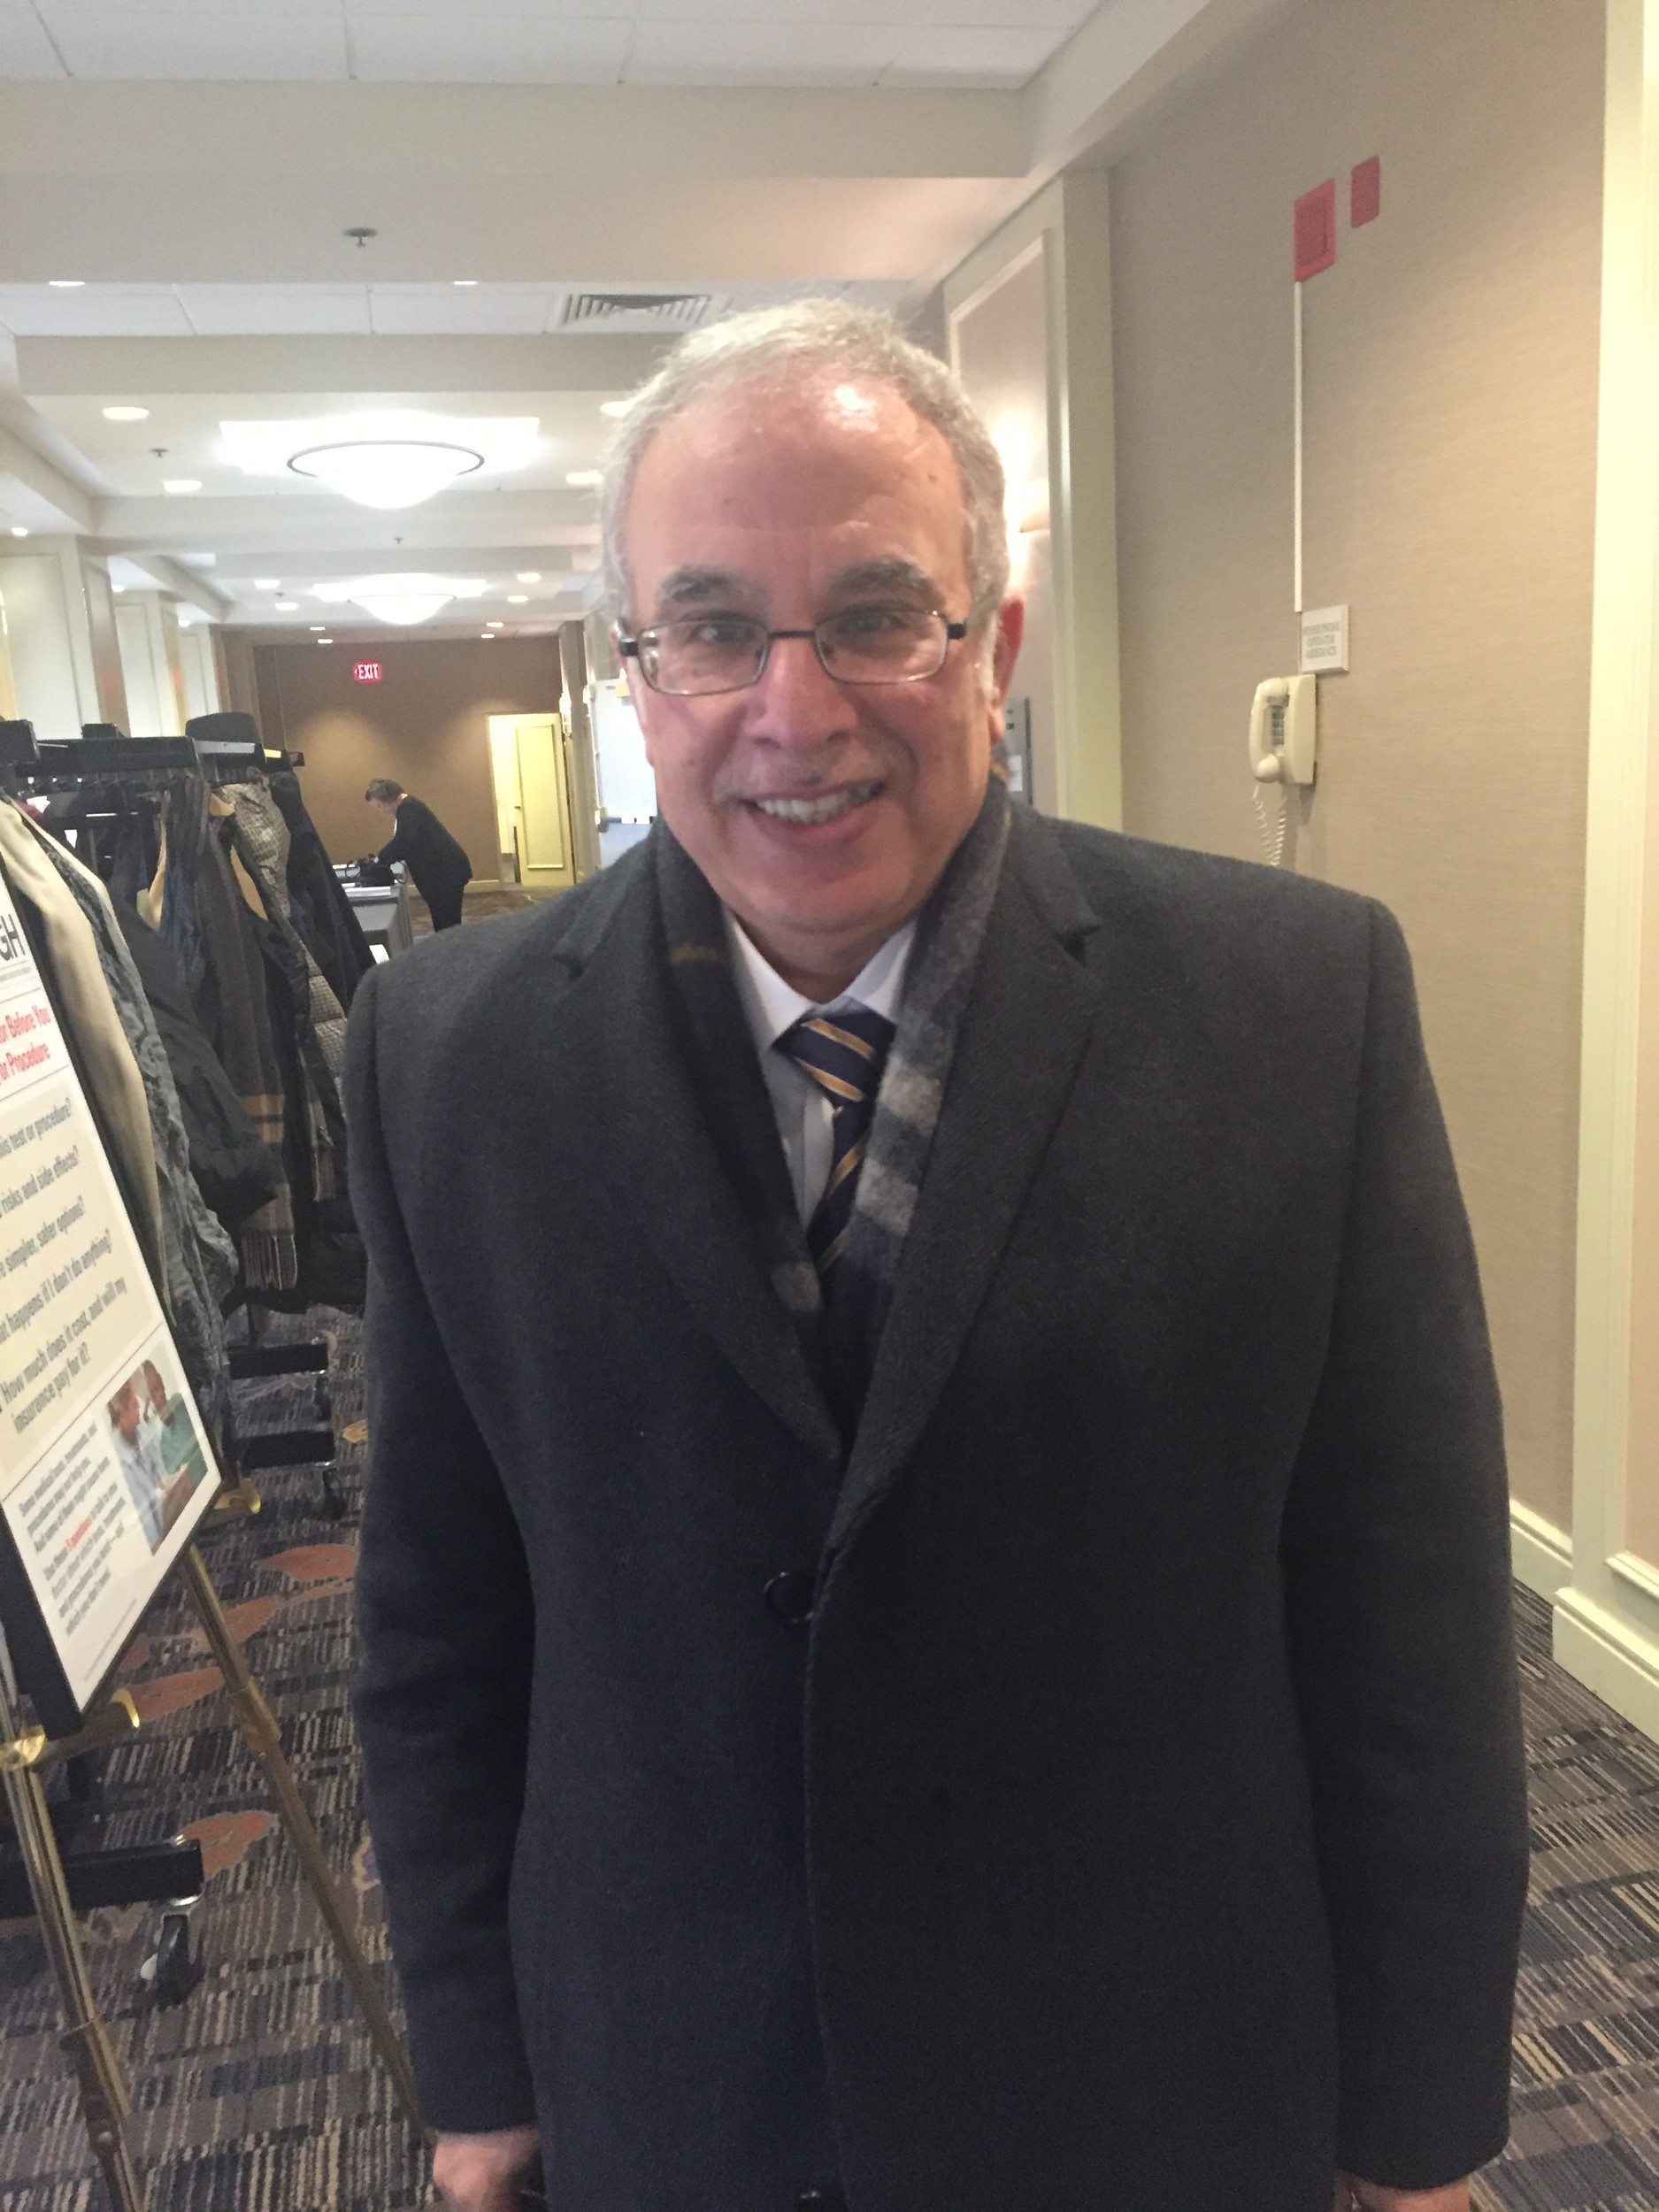 DR. OSAMA HAMDY, medical director of Joslin Diabetes Center's obesity clinical program, was the keynote speaker at the Rhode Island Business Group on Health diabetes summit on Jan. 20.  PBN PHOTO/NANCY KIRSCH